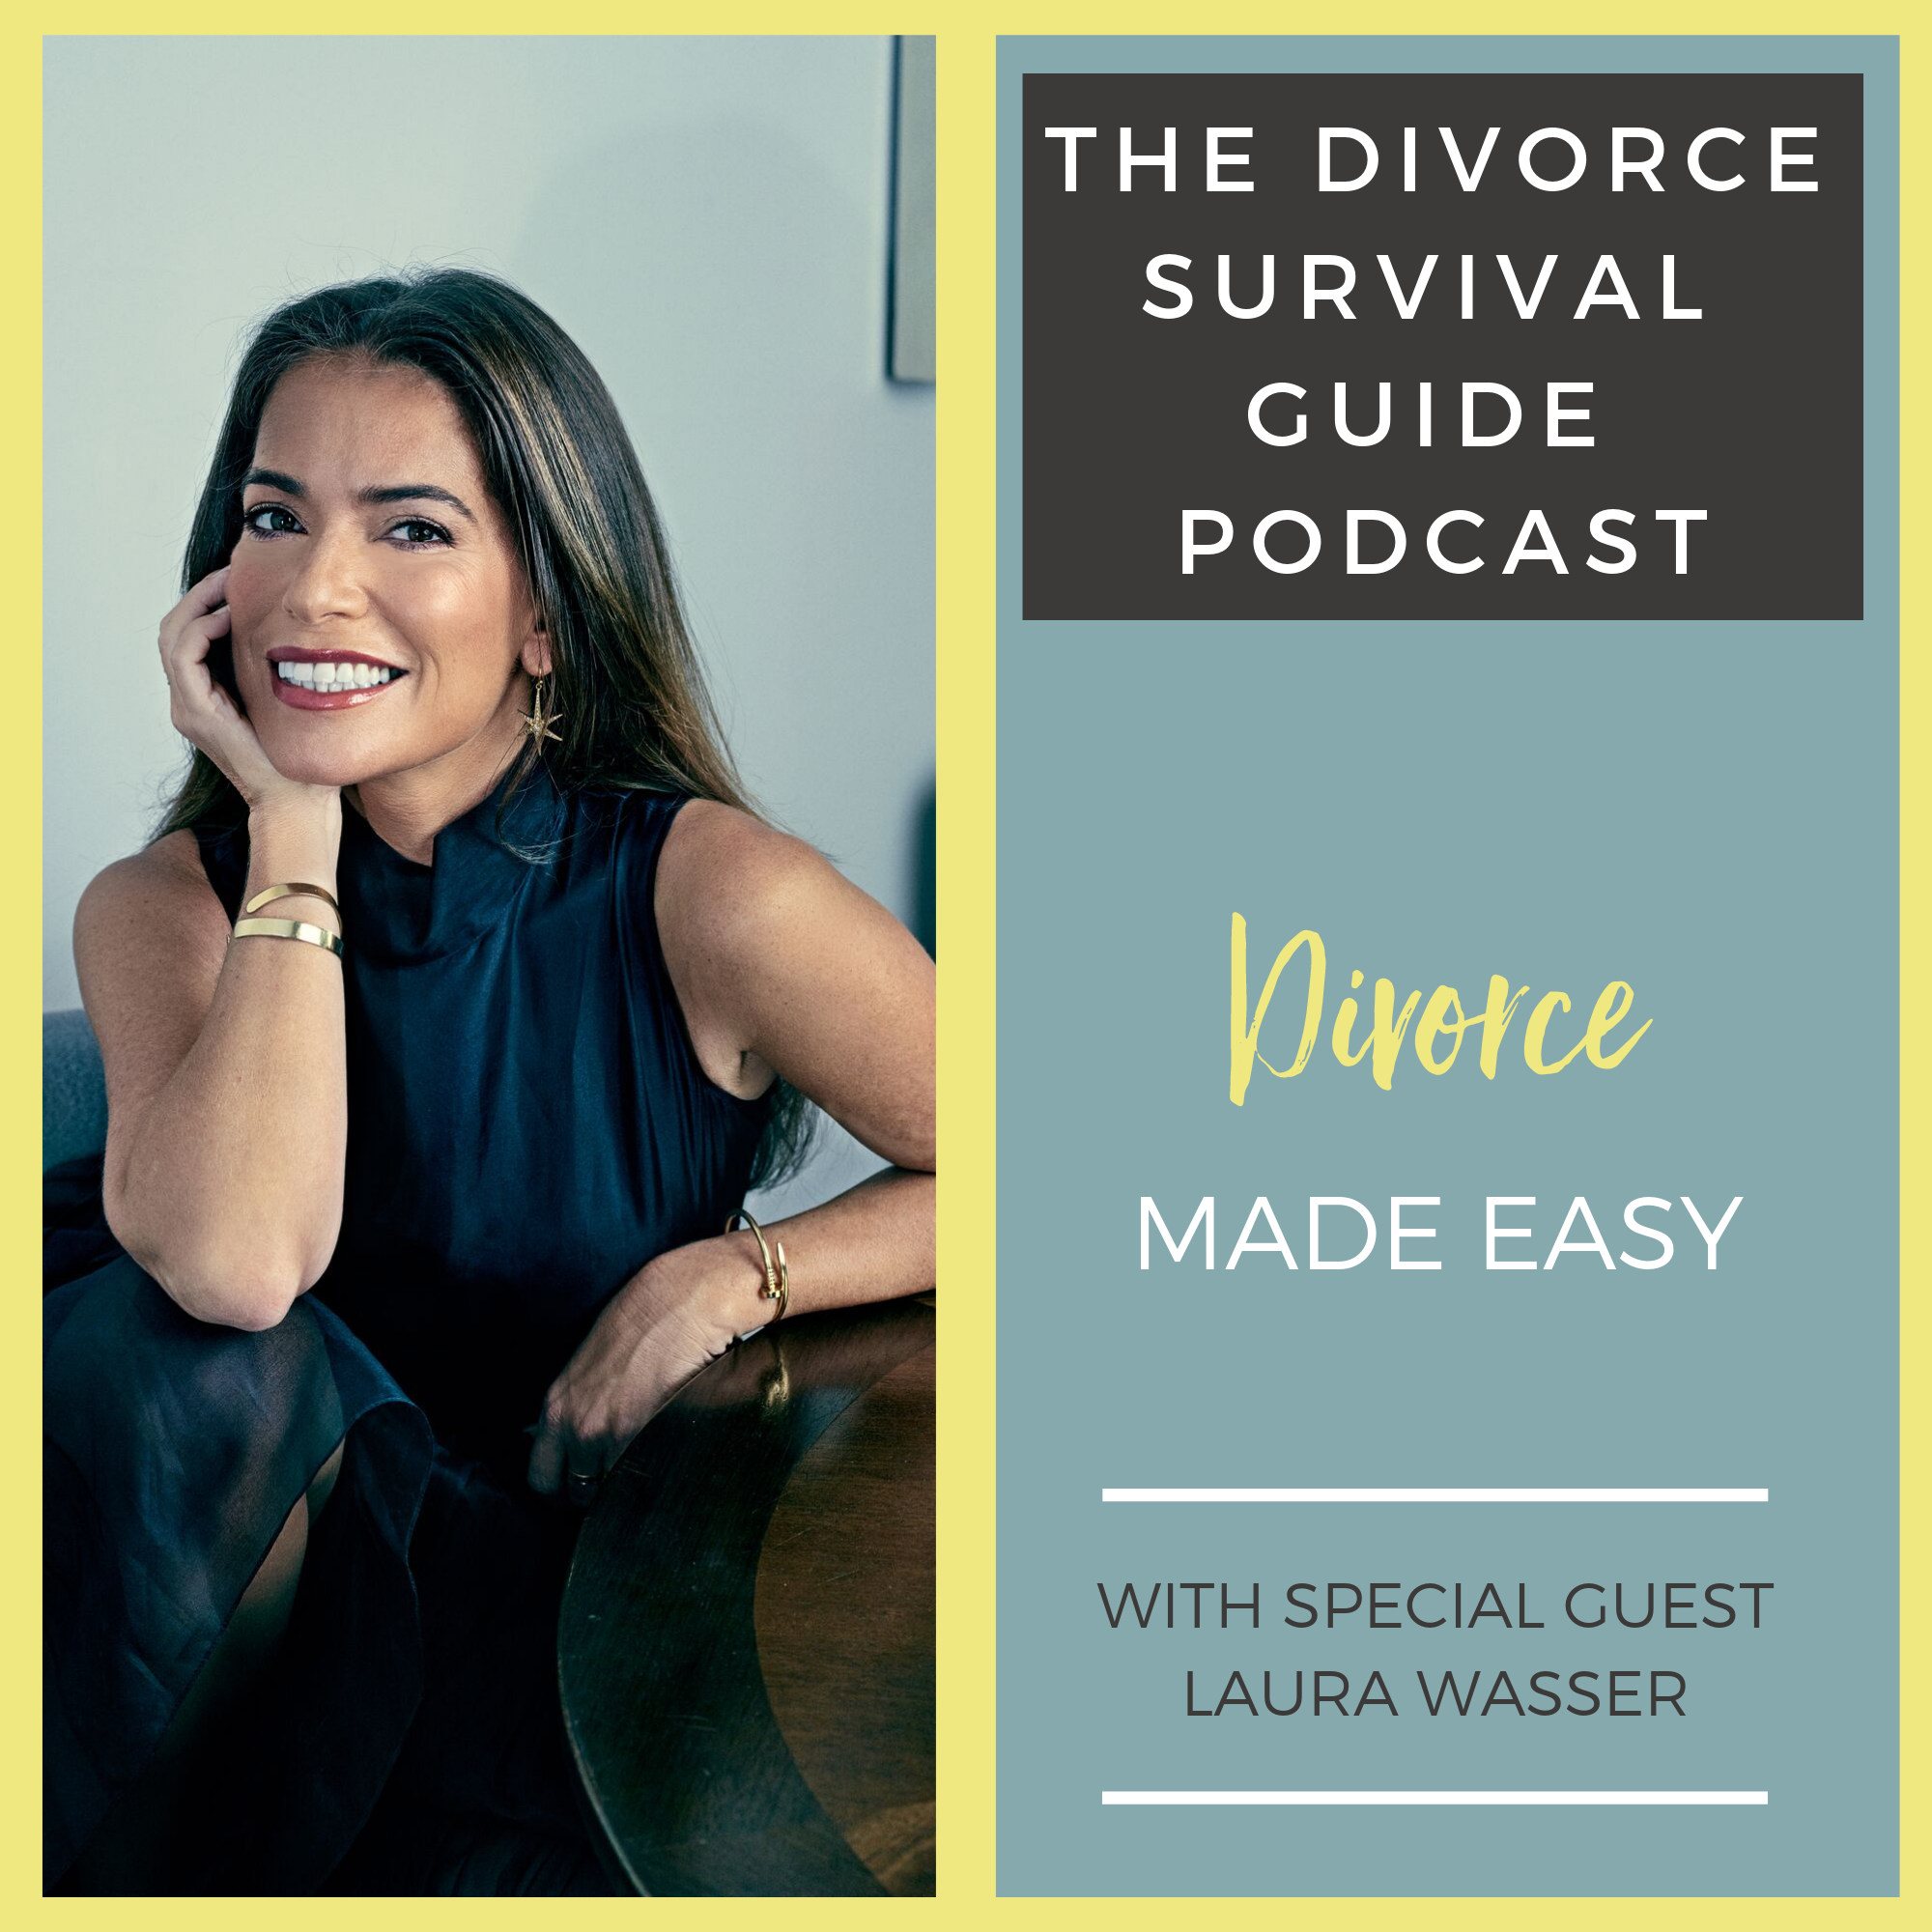 The Divorce Survival Guide Podcast - Divorce Made Easy with Laura Wasser